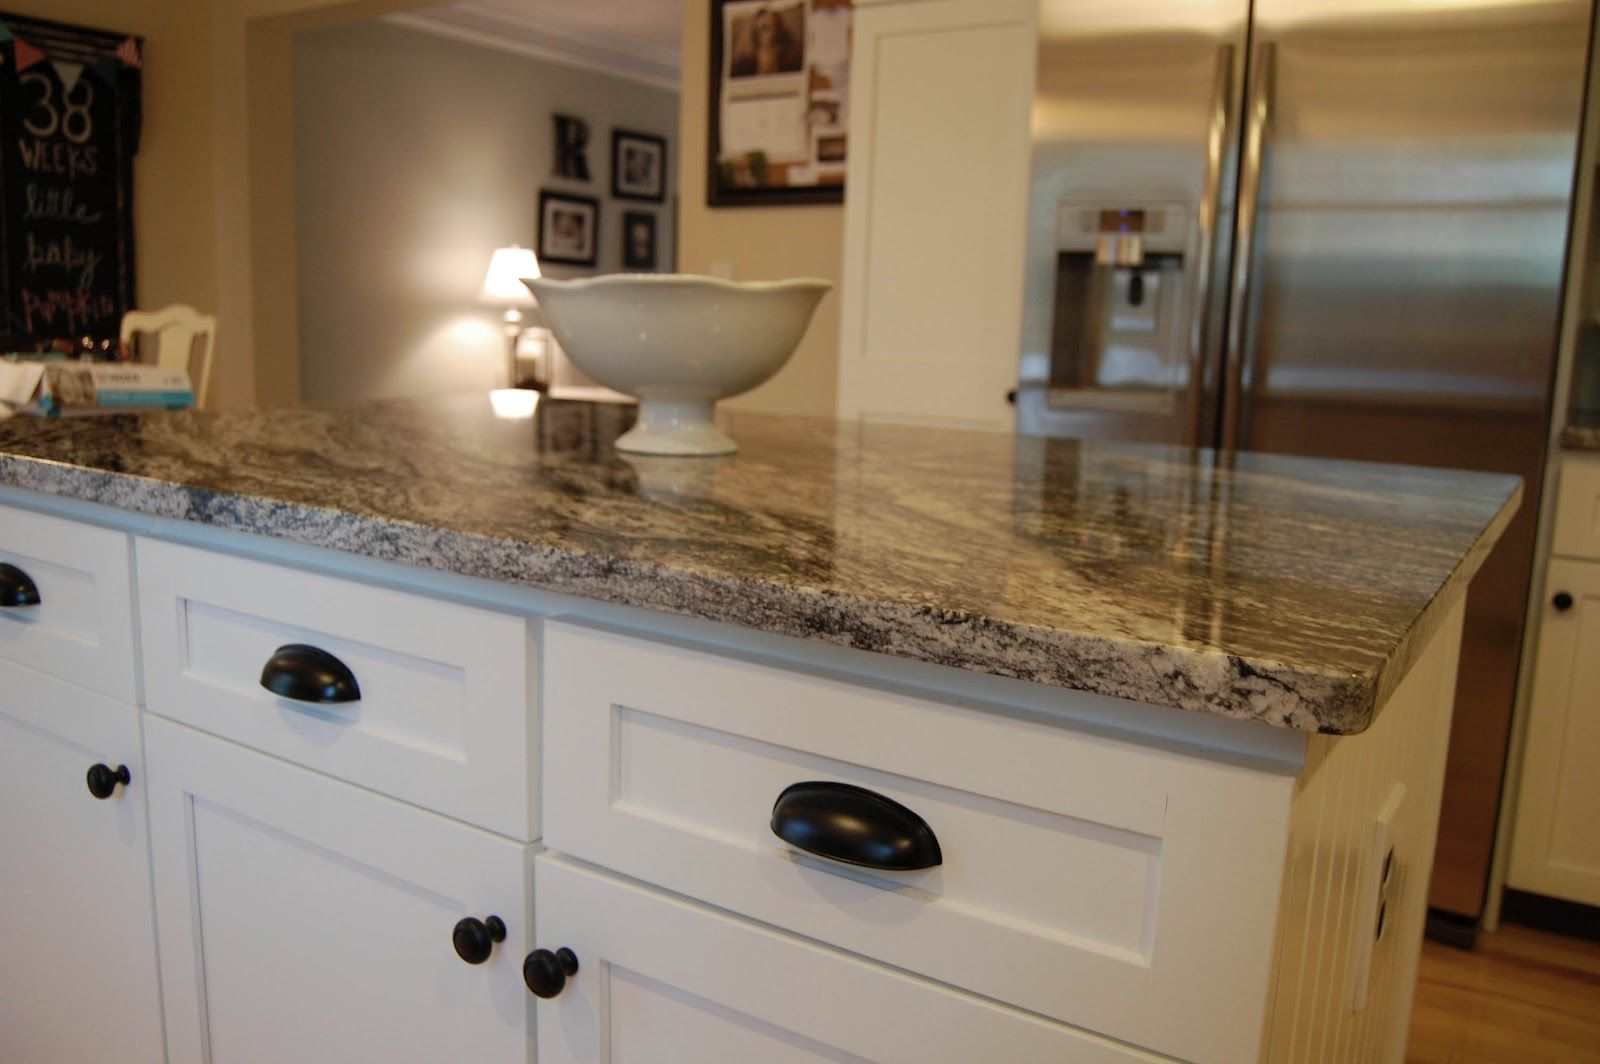 White Bathroom Cabinets With Granite Photo Kitchen Design Ideas Kitchen Countertops White Cabinets Best Countertops Outdoor Kitchen Countertops